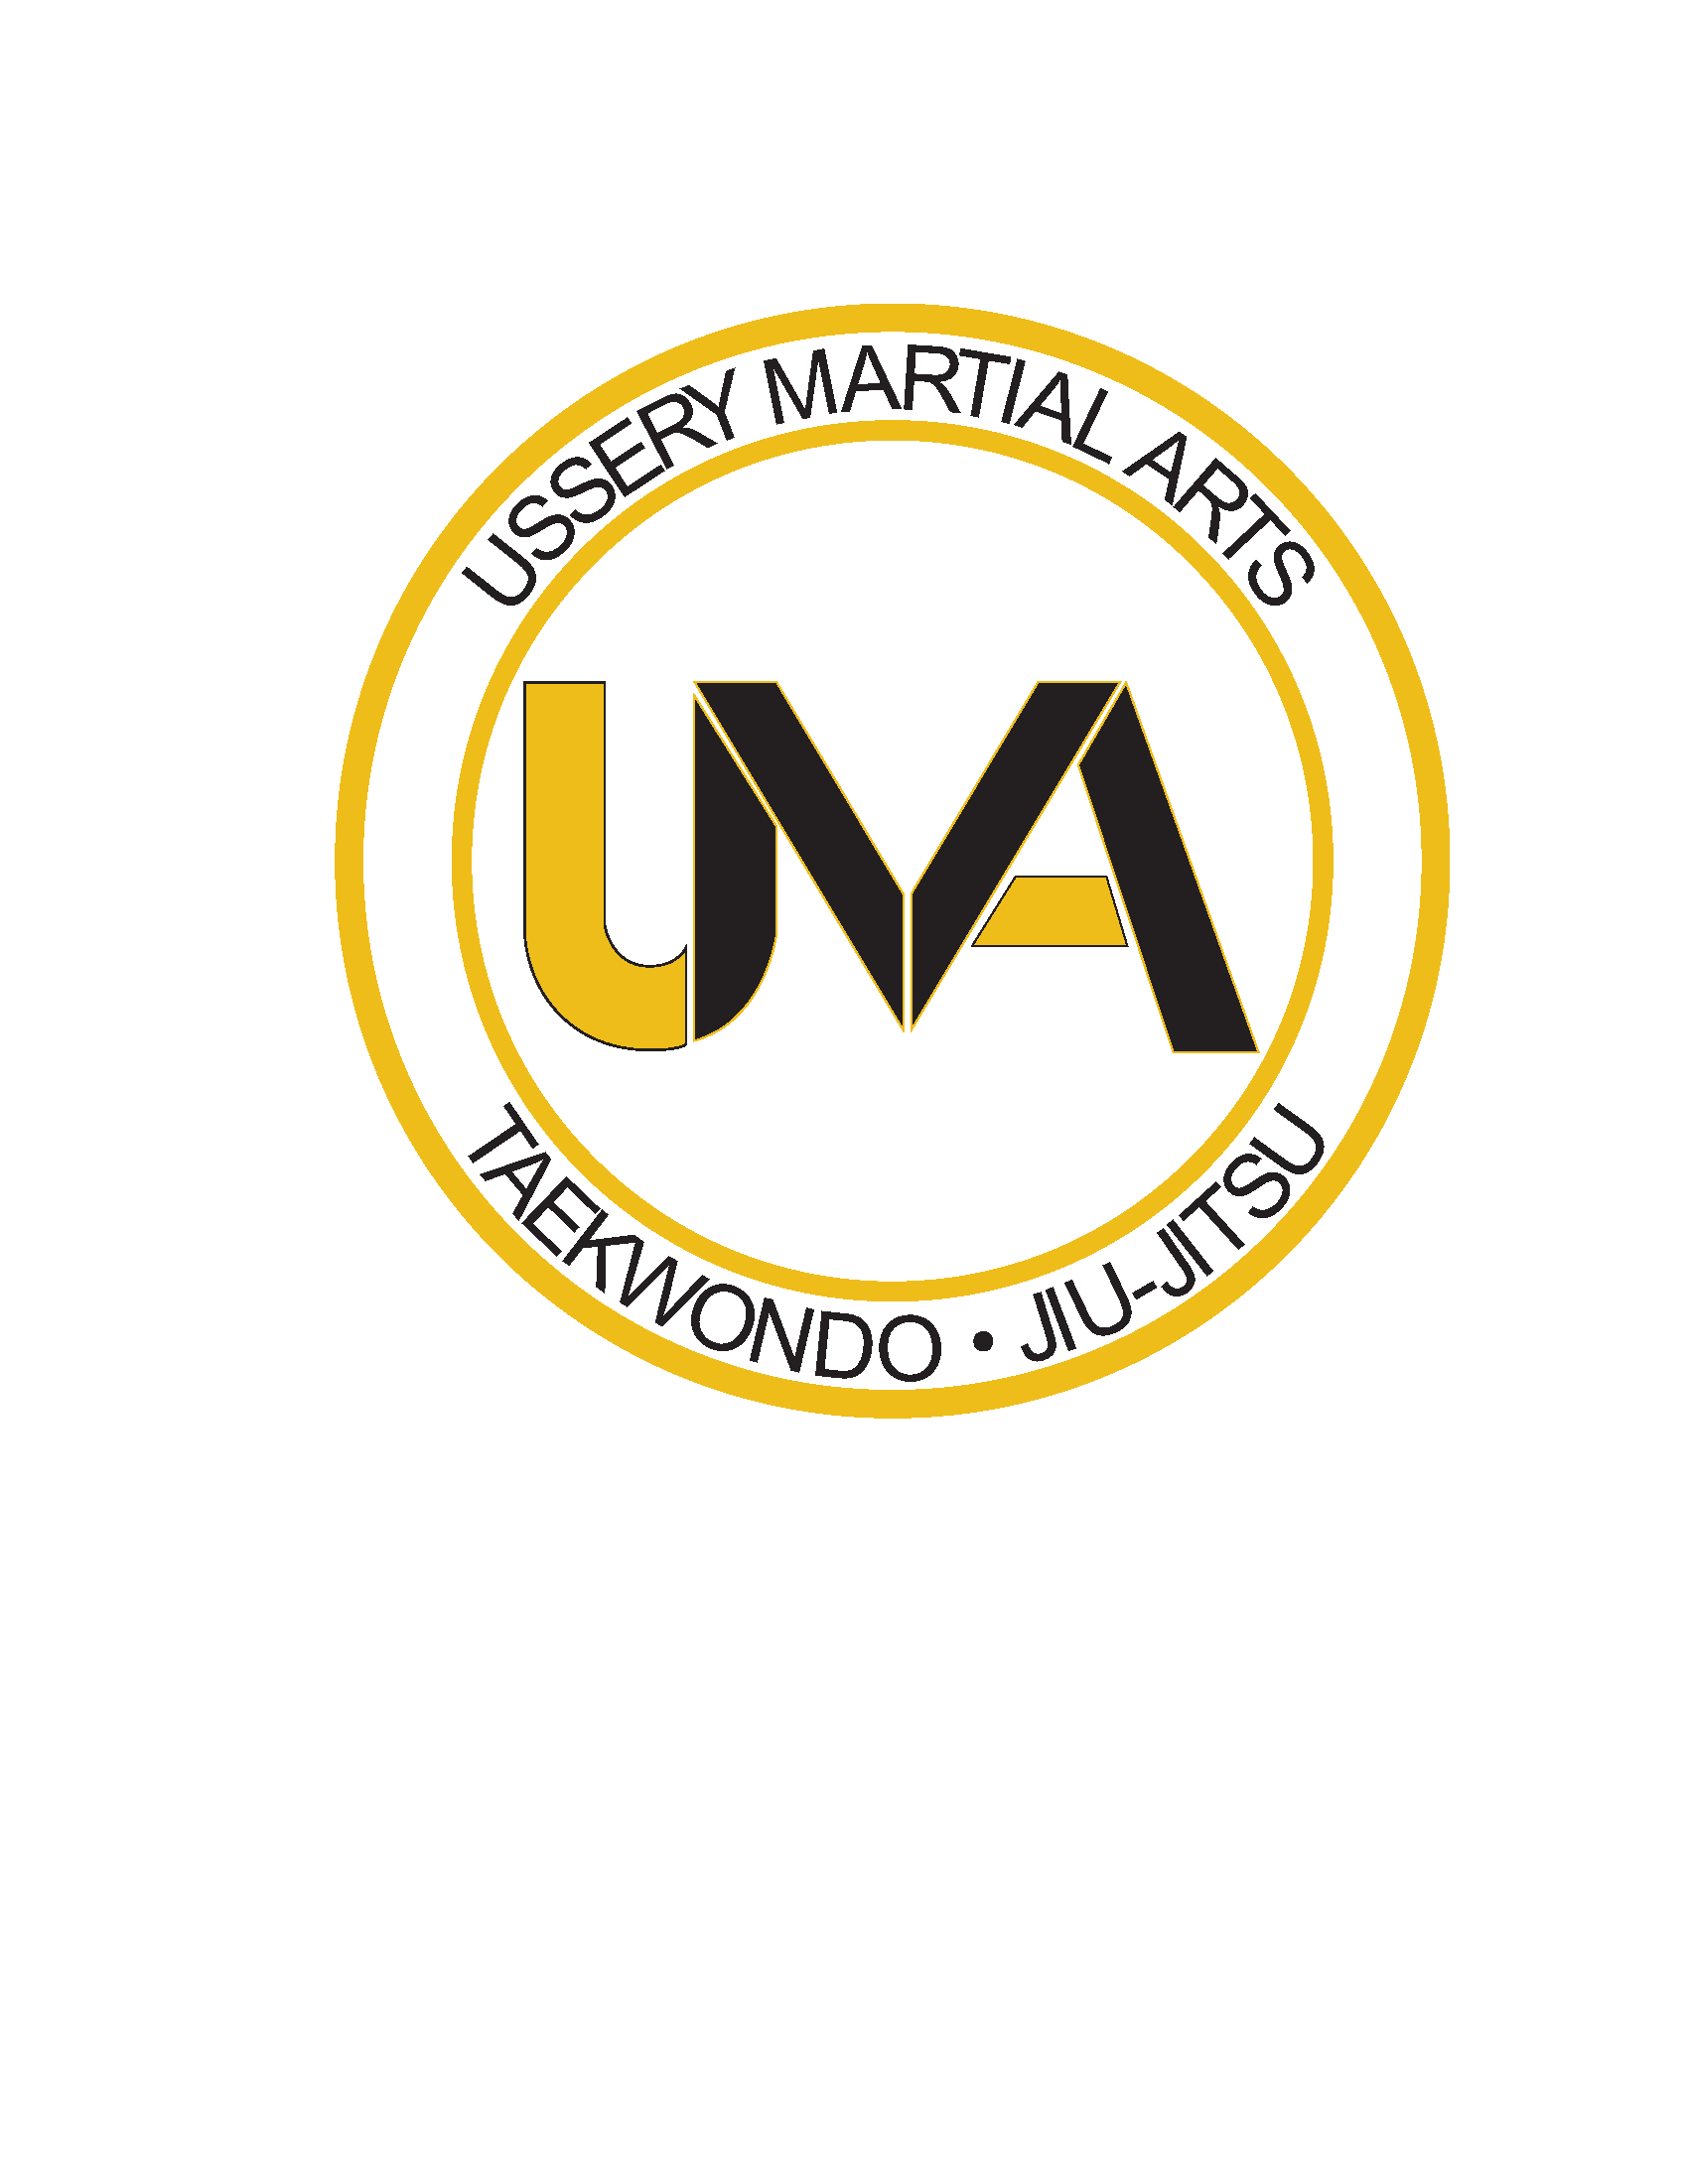 Ussery Martial Arts